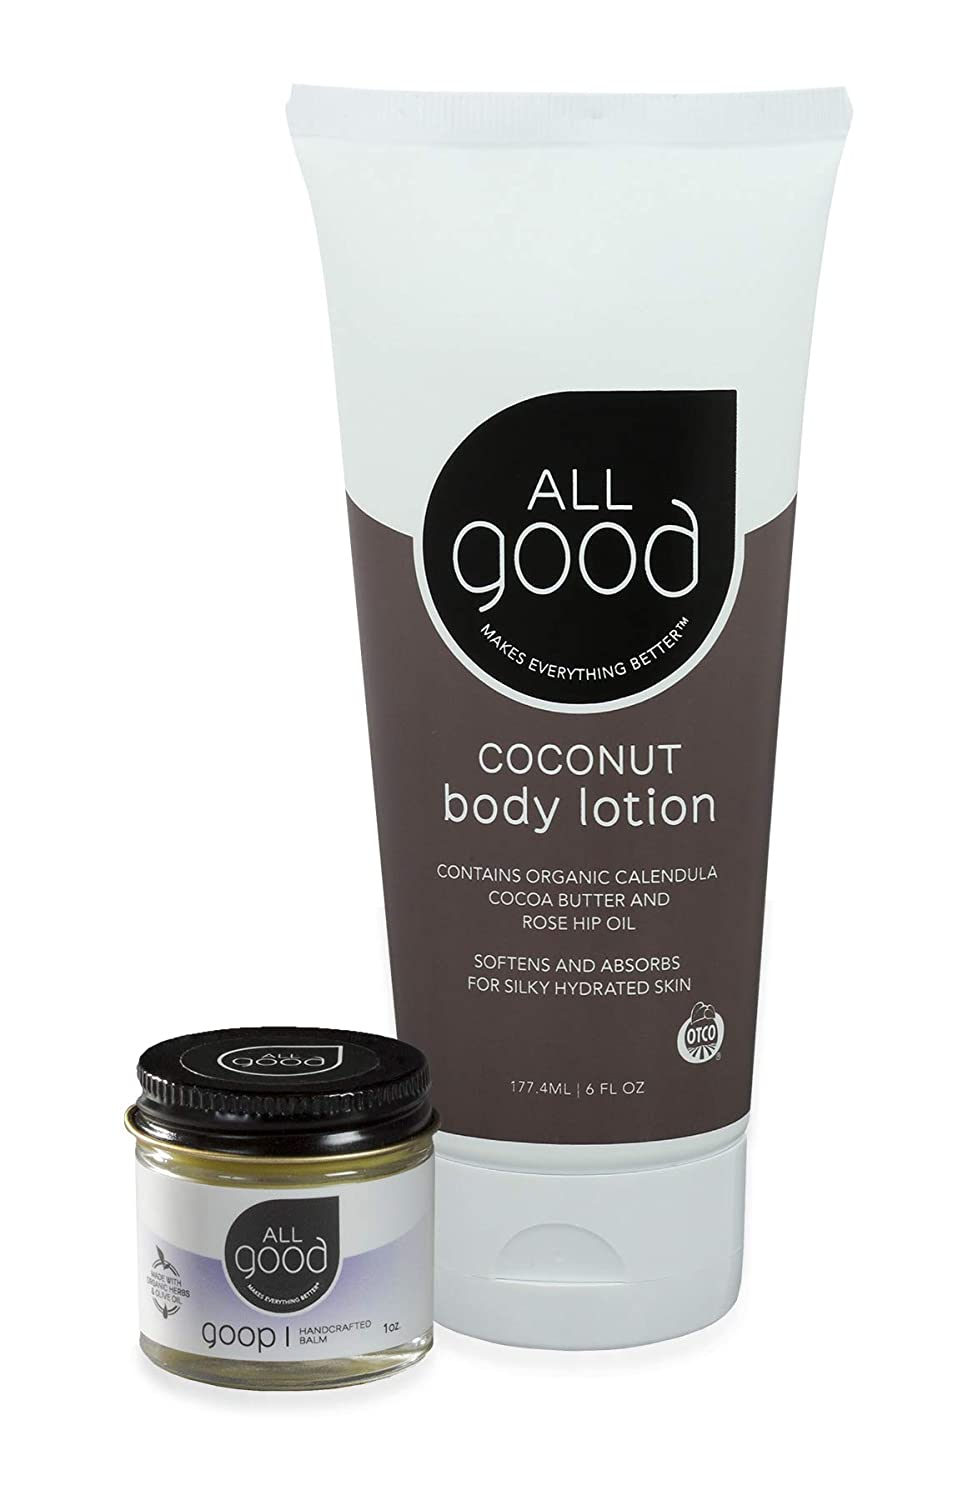 All Good Hand & Skin Relief Combo Set - Moisturize Dry Cracked Skin - Organic Handcrafted Balm & Coconut Lotion